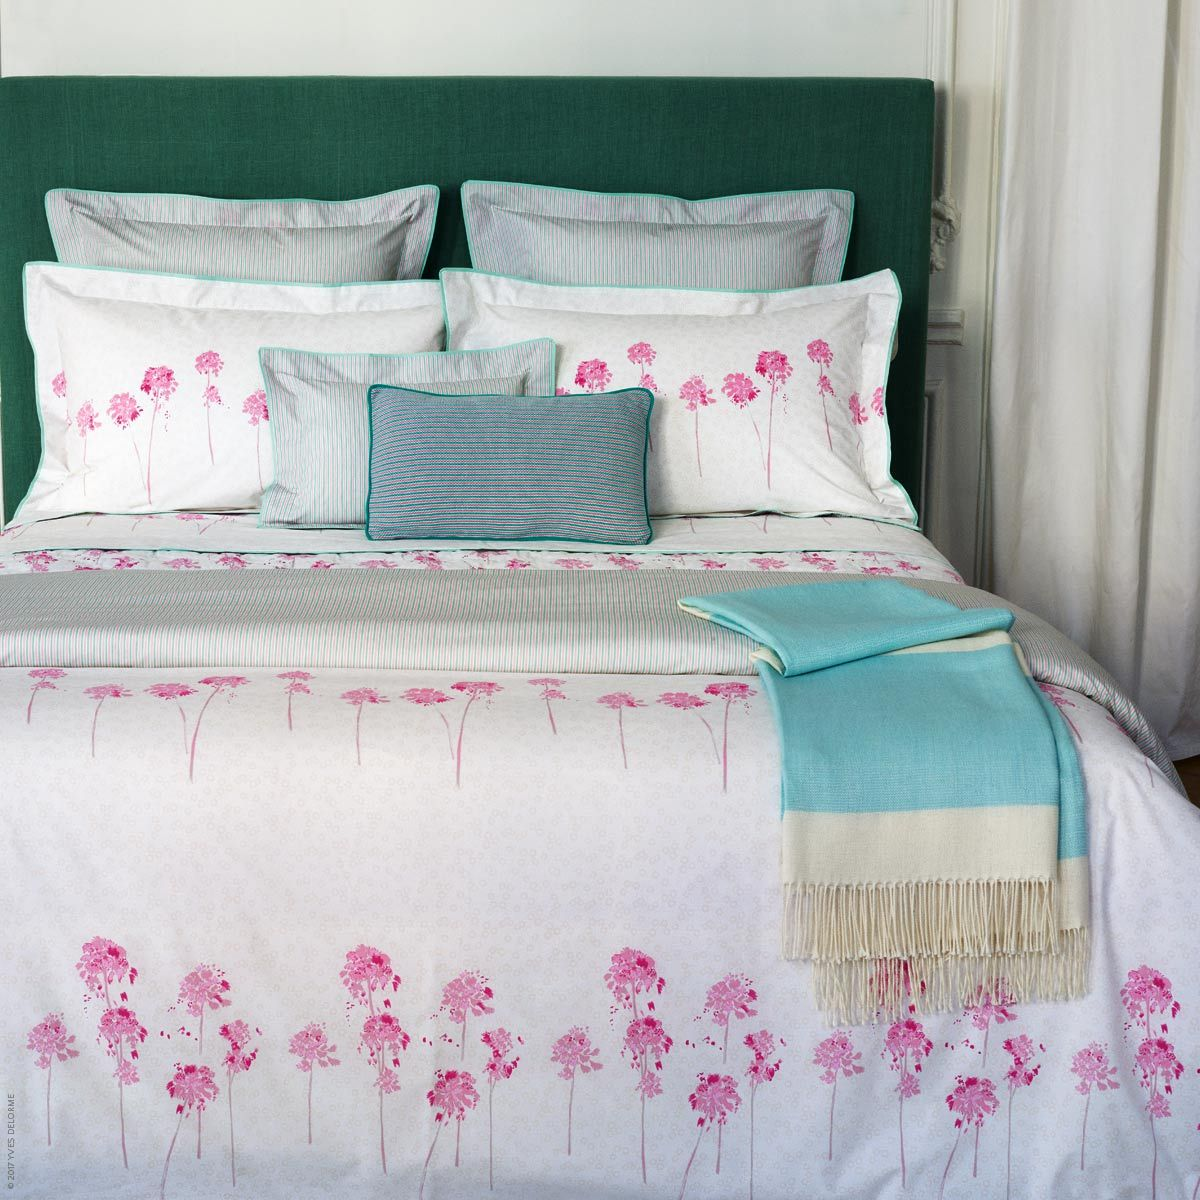 Rivages Bed Linens Includes Printed Floral Top Of The Bed And Bed Sheets Yves Delorme Egyptian Cotton France Bed Linens Luxury Bed Bed Linen Online